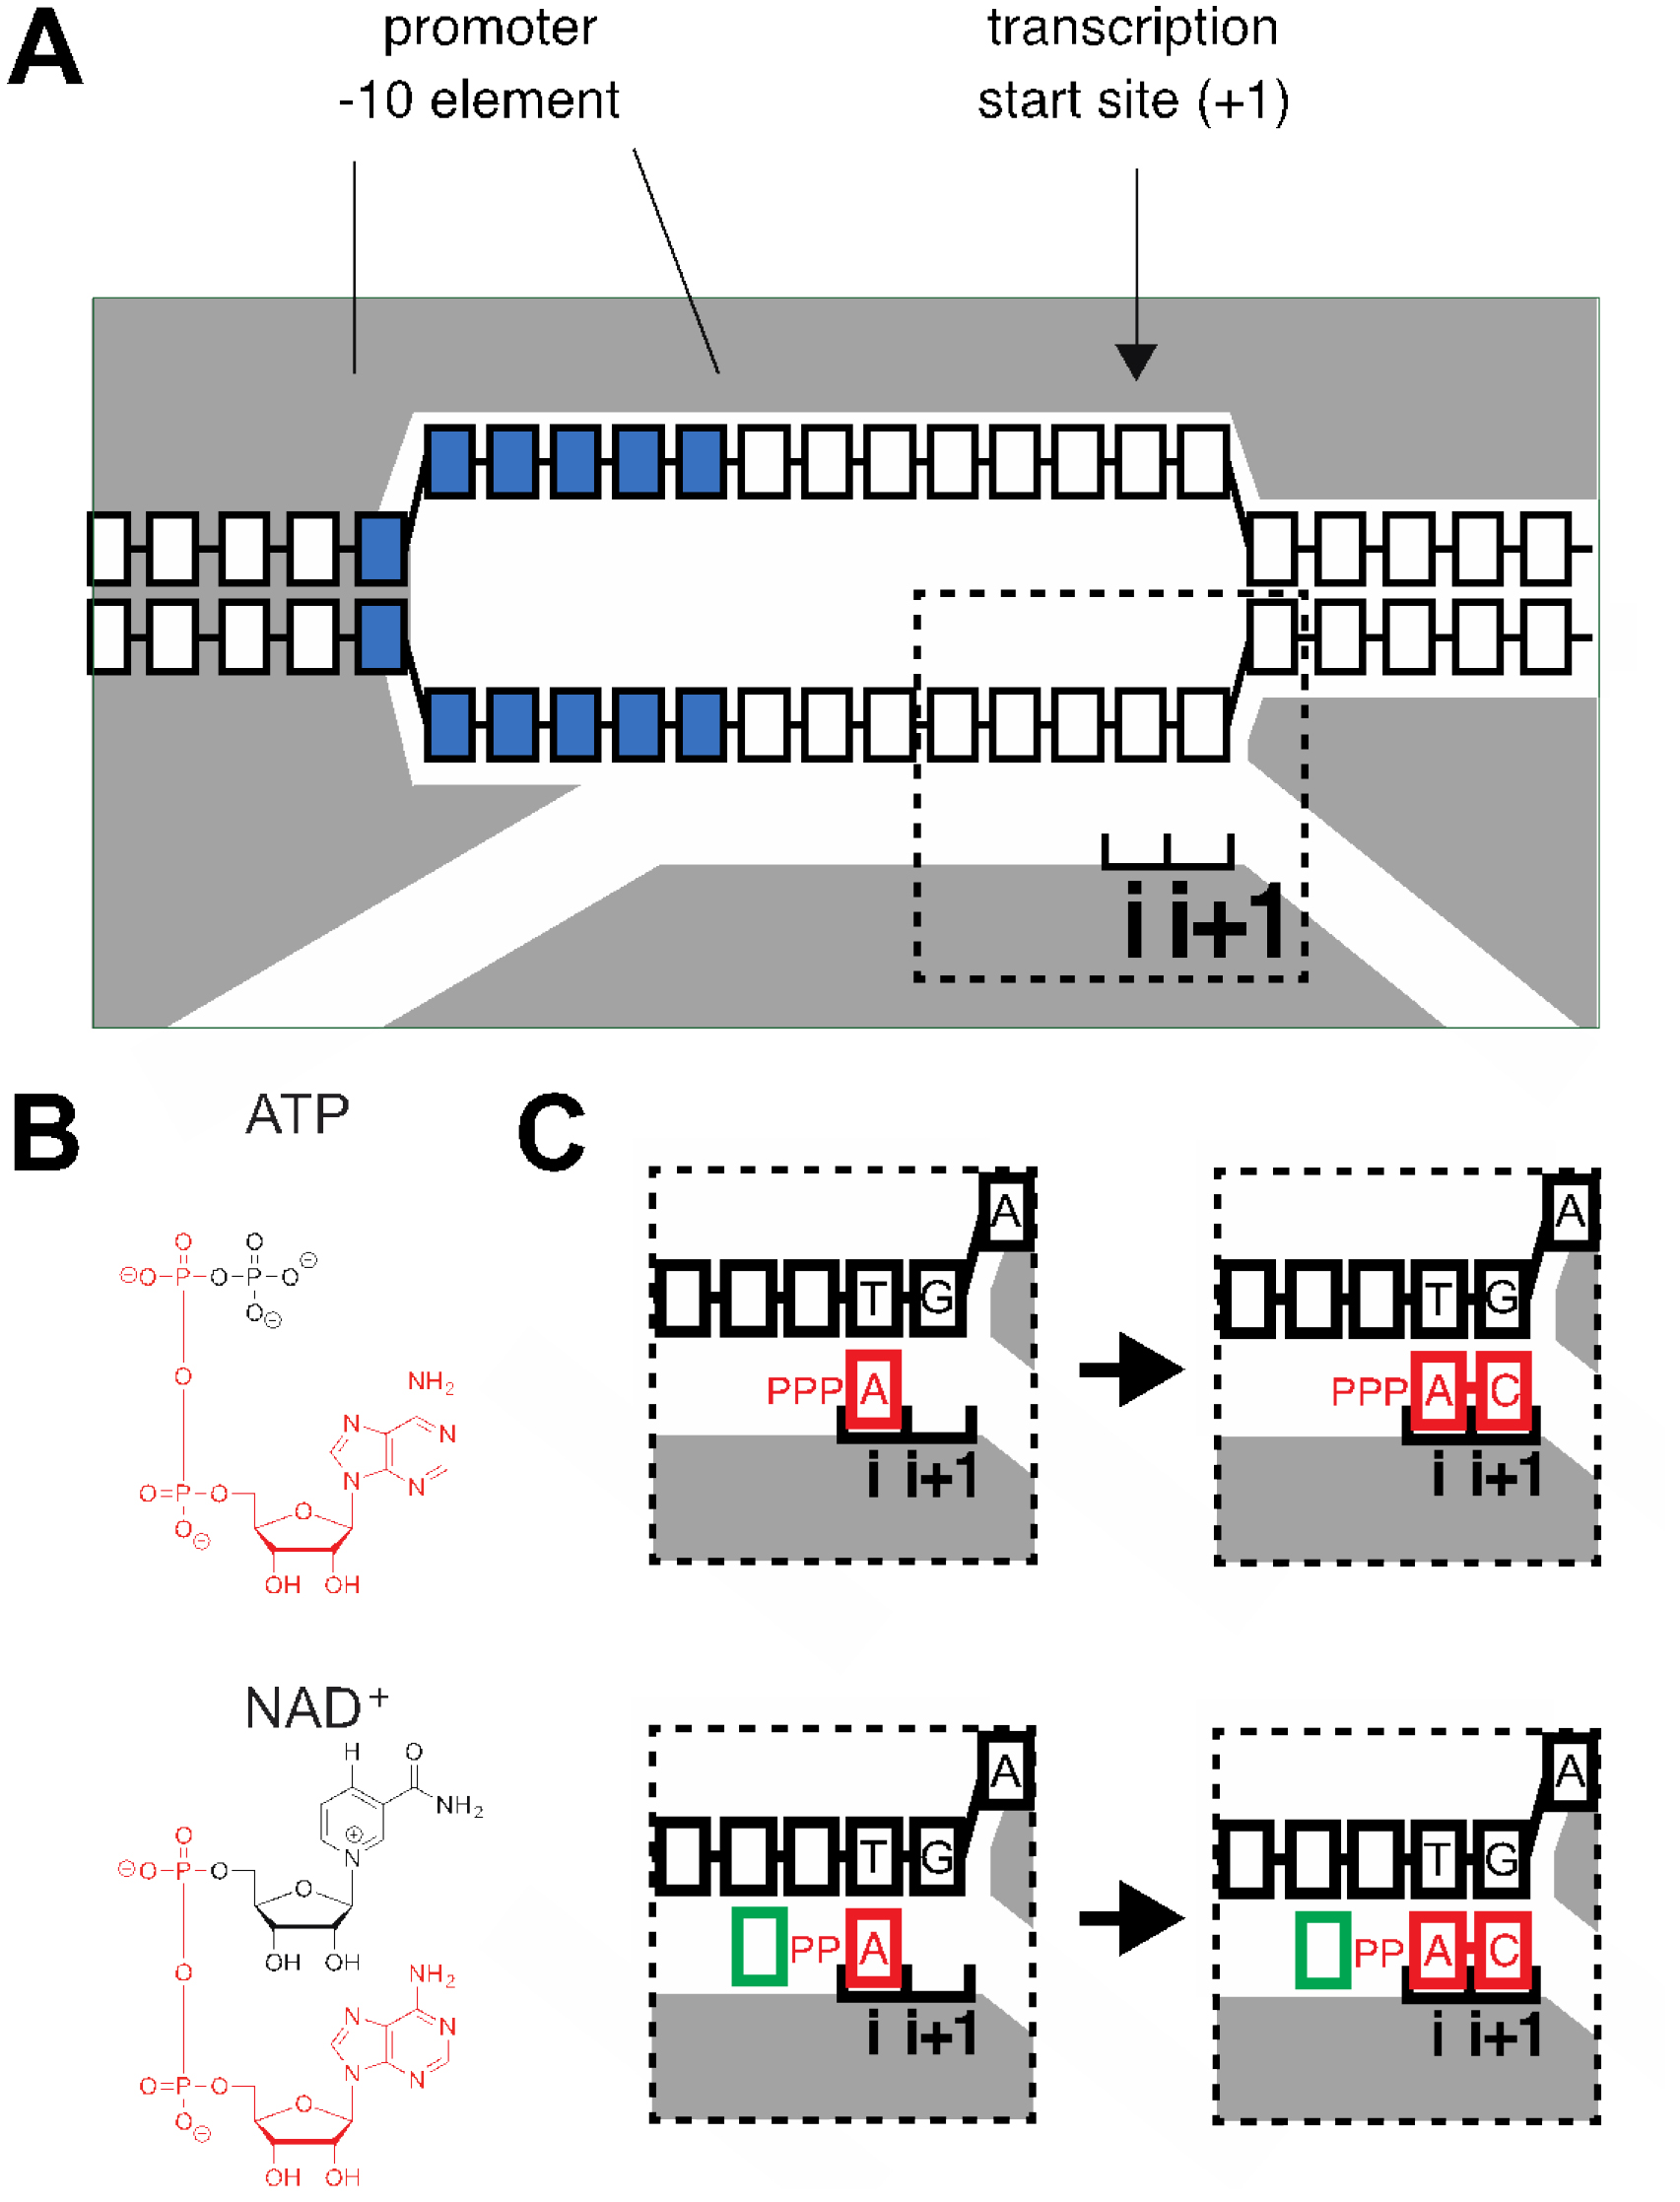 hight resolution of gray rnap blue 10 element nucleotides i and i 1 rnap active center initiating nucleotide binding site and extending nucleotide binding site boxes